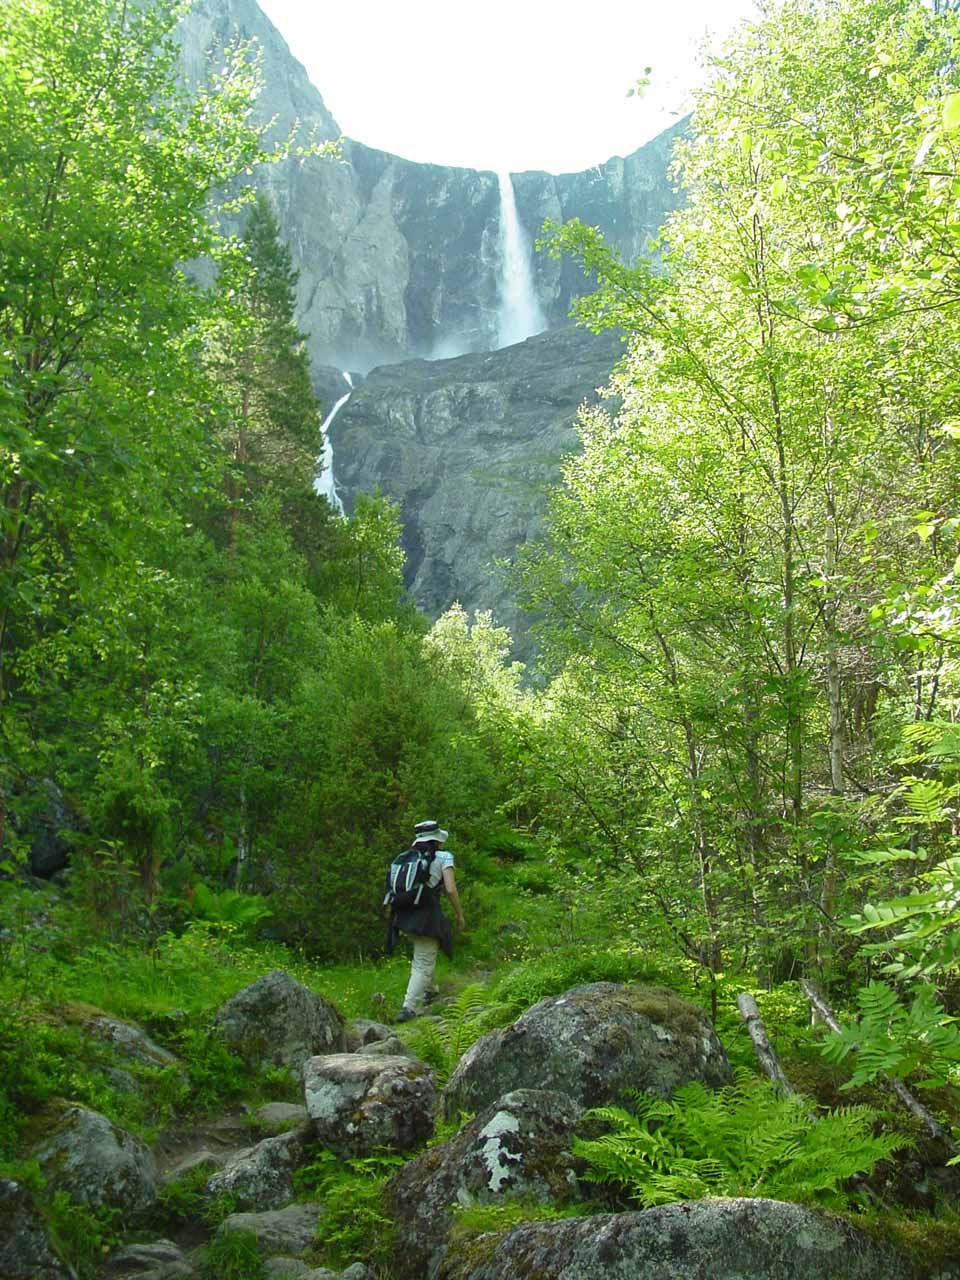 Julie continuing on the Mardalsfossen Trail with the falls seen up ahead through the trees